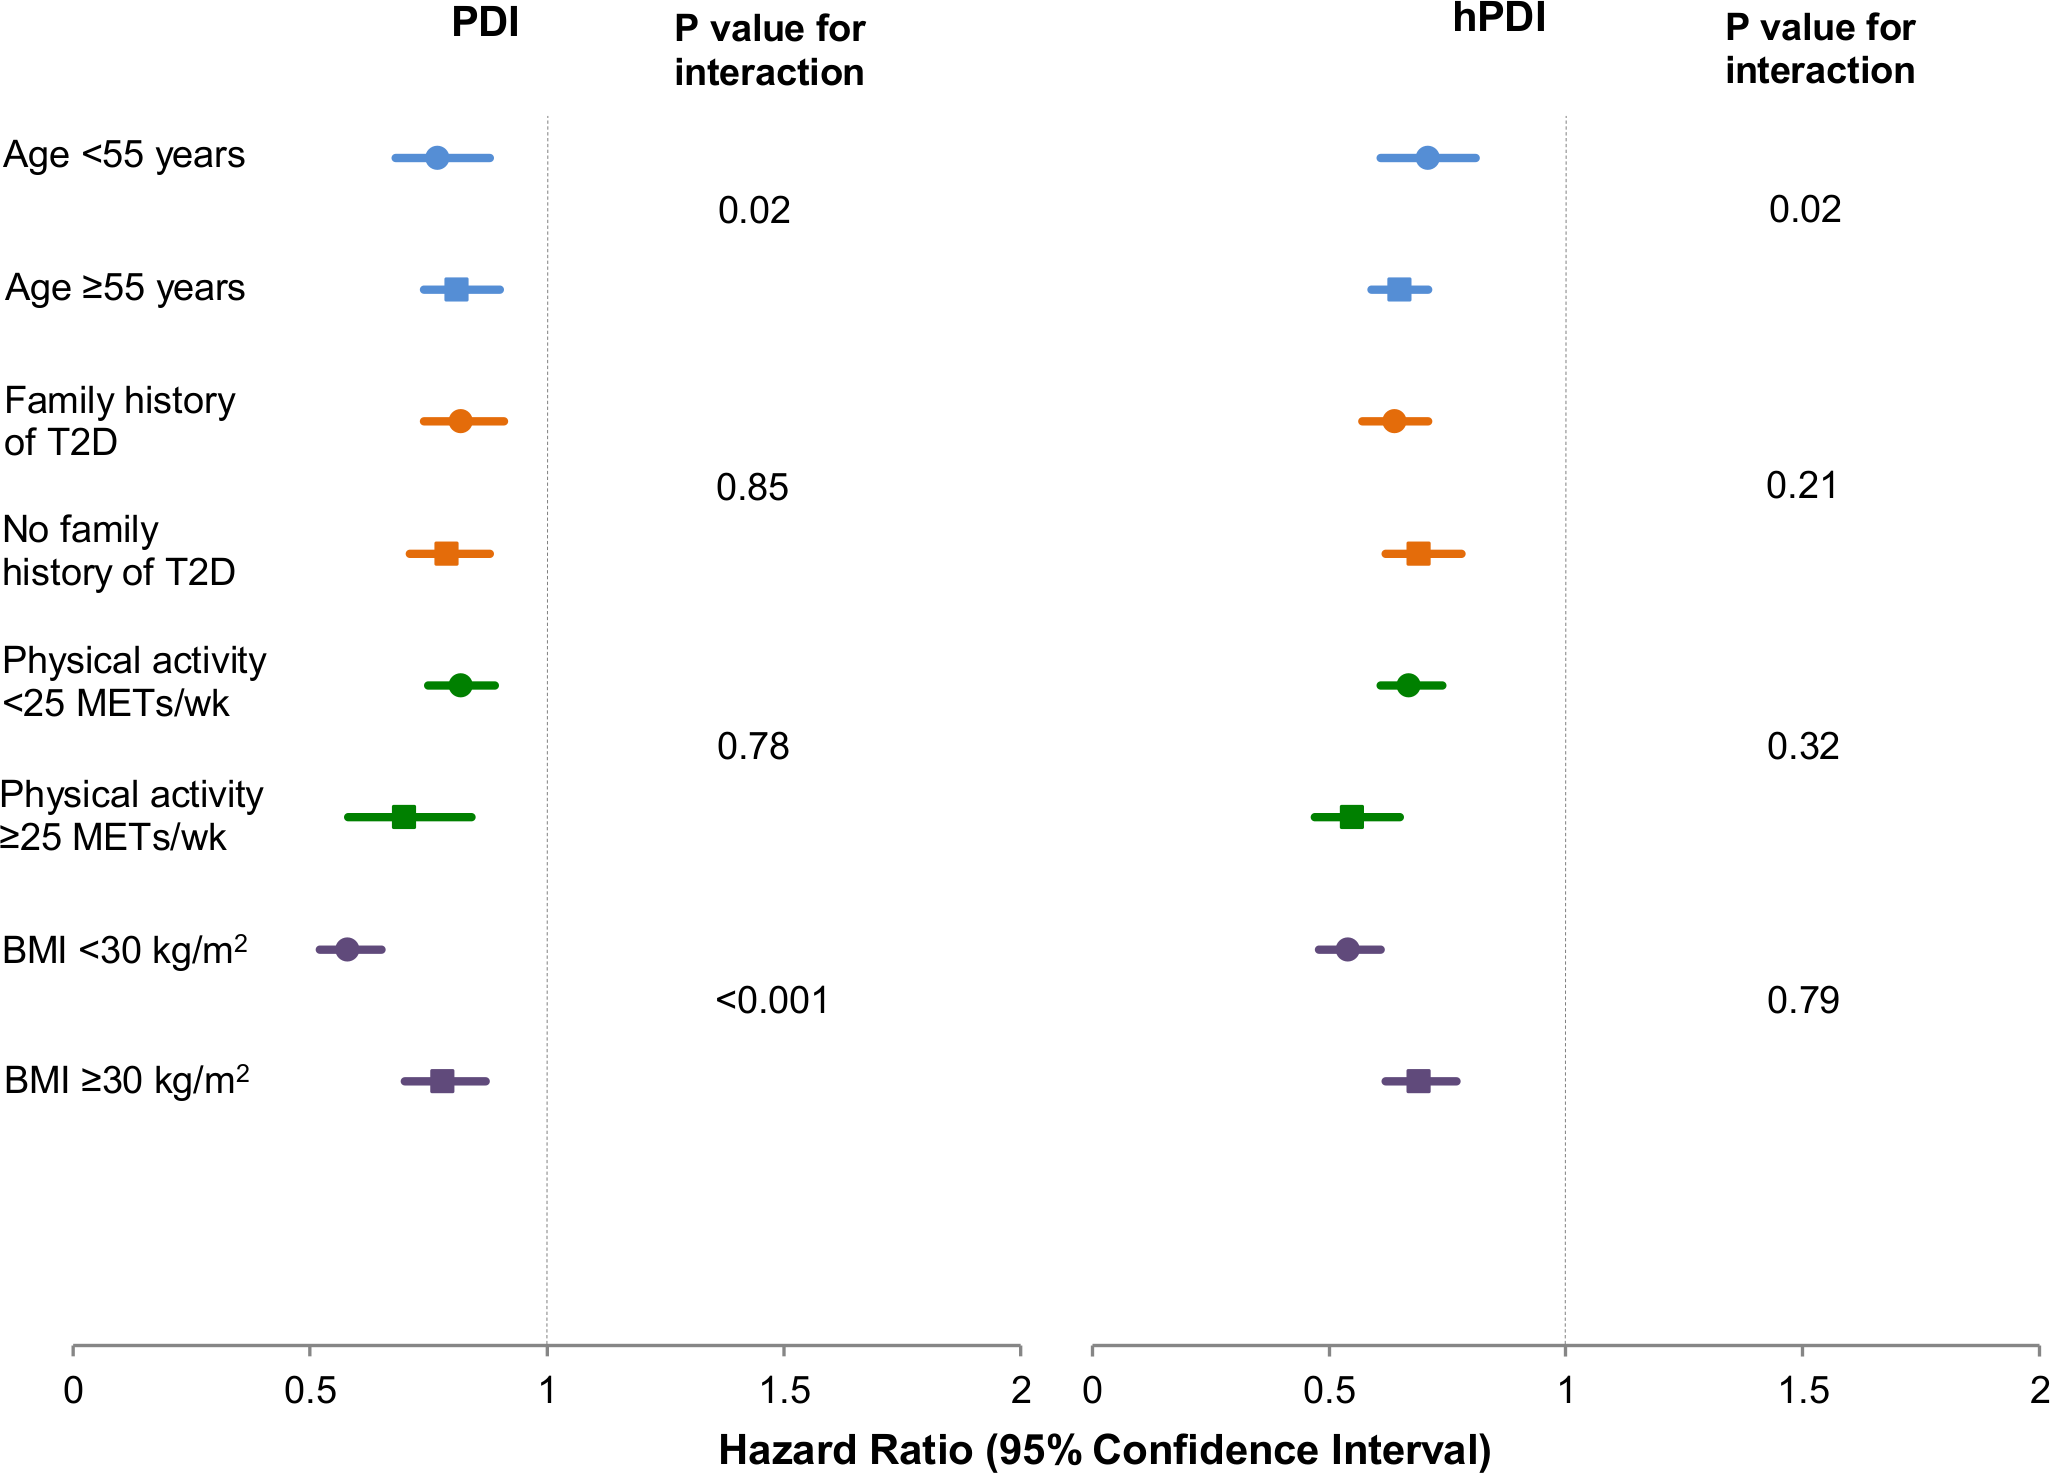 Pooled hazard ratios (95% CI) for type 2 diabetes comparing extreme deciles of the plant-based diet indices, stratified by selected characteristics.